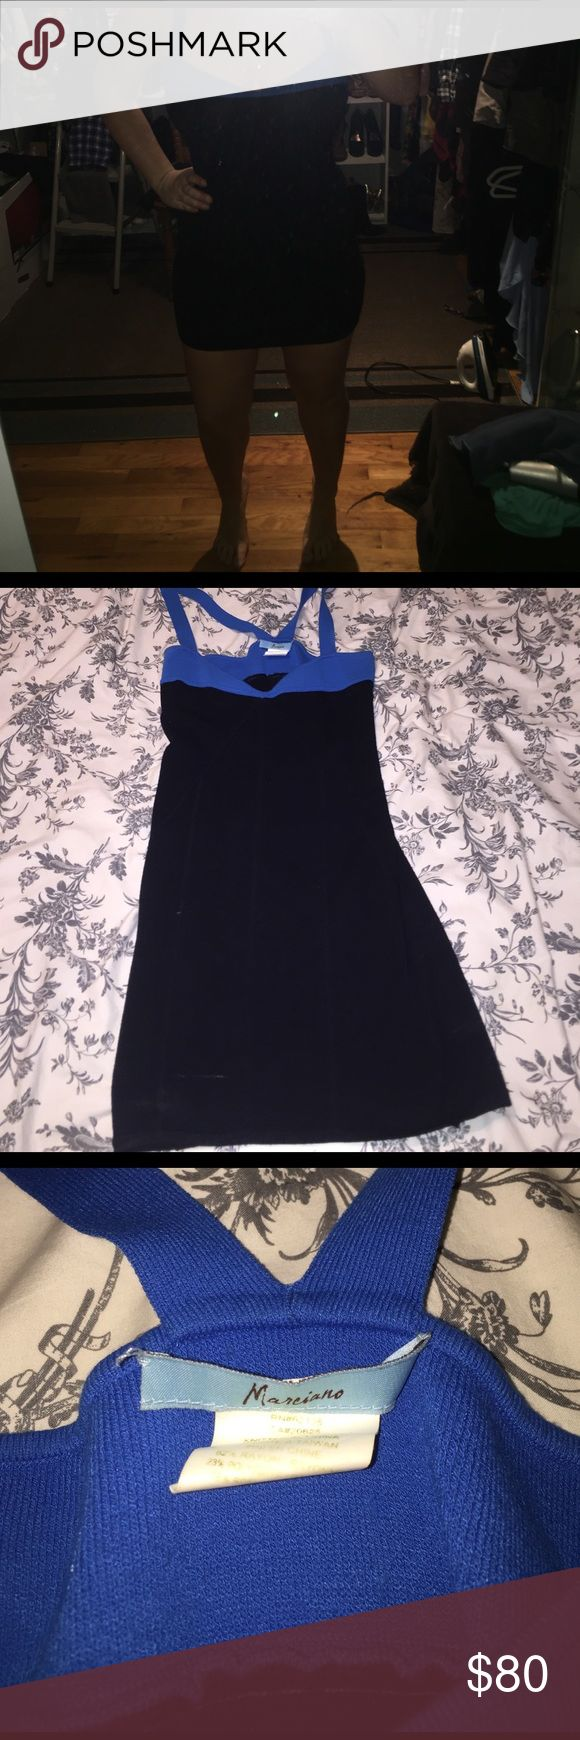 Guess Marciano two tone blue black mini Guess Marciano two tone blue black mini dress in size L. Very stretchy and comfortable, hugs curves. Worn once, great for parties or night out! Marciano Dresses Mini